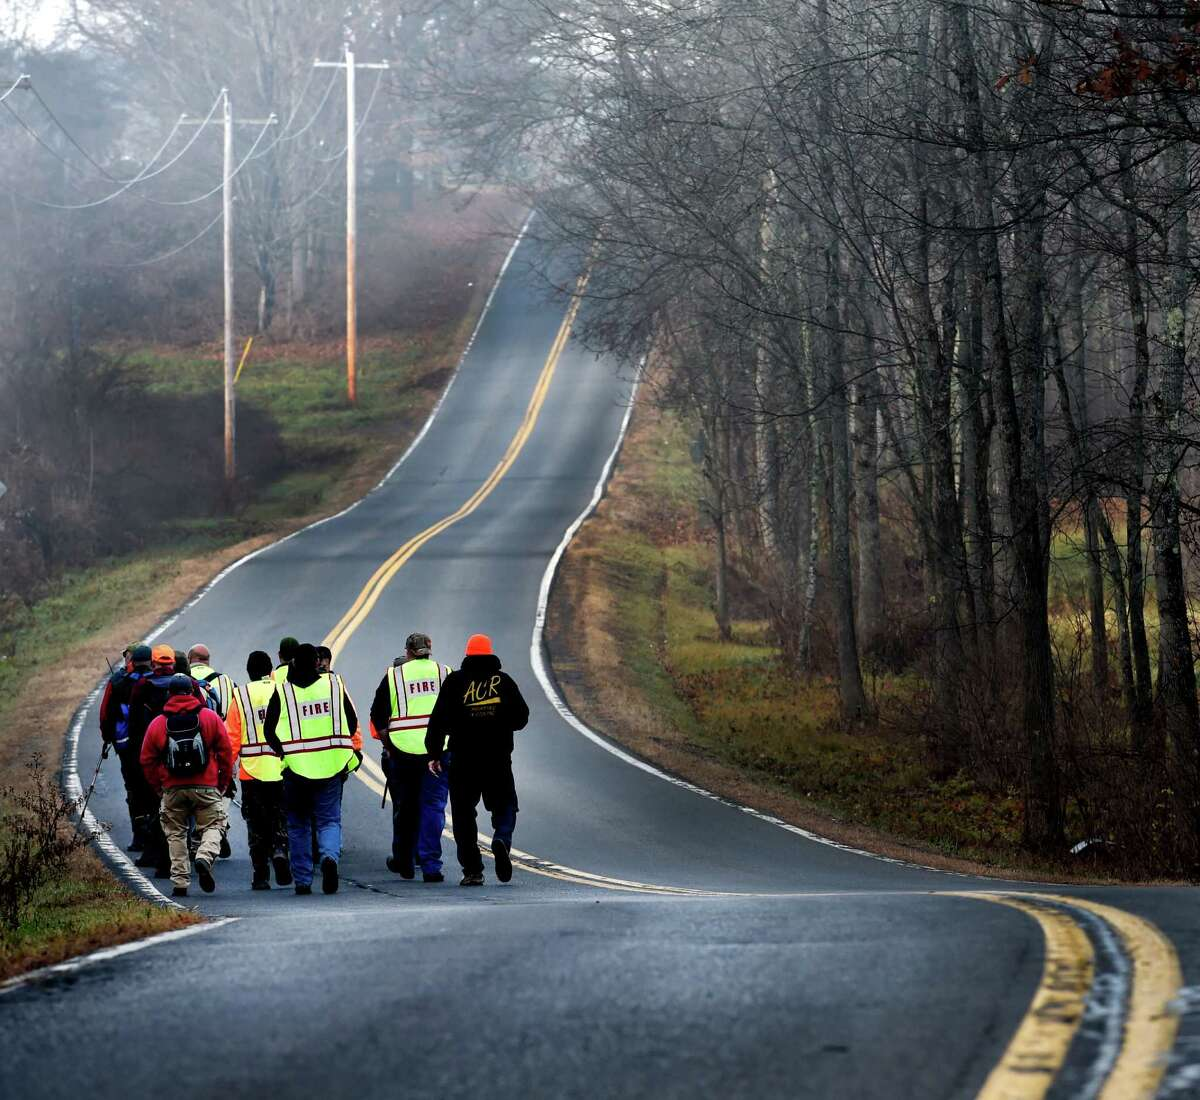 Searchers walk west on Burgoyne Road during the continuation of the search for the missing Fred Drumm Friday morning Nov. 27, 2015 in Schuylerville, N.Y. (Skip Dickstein/Times Union)